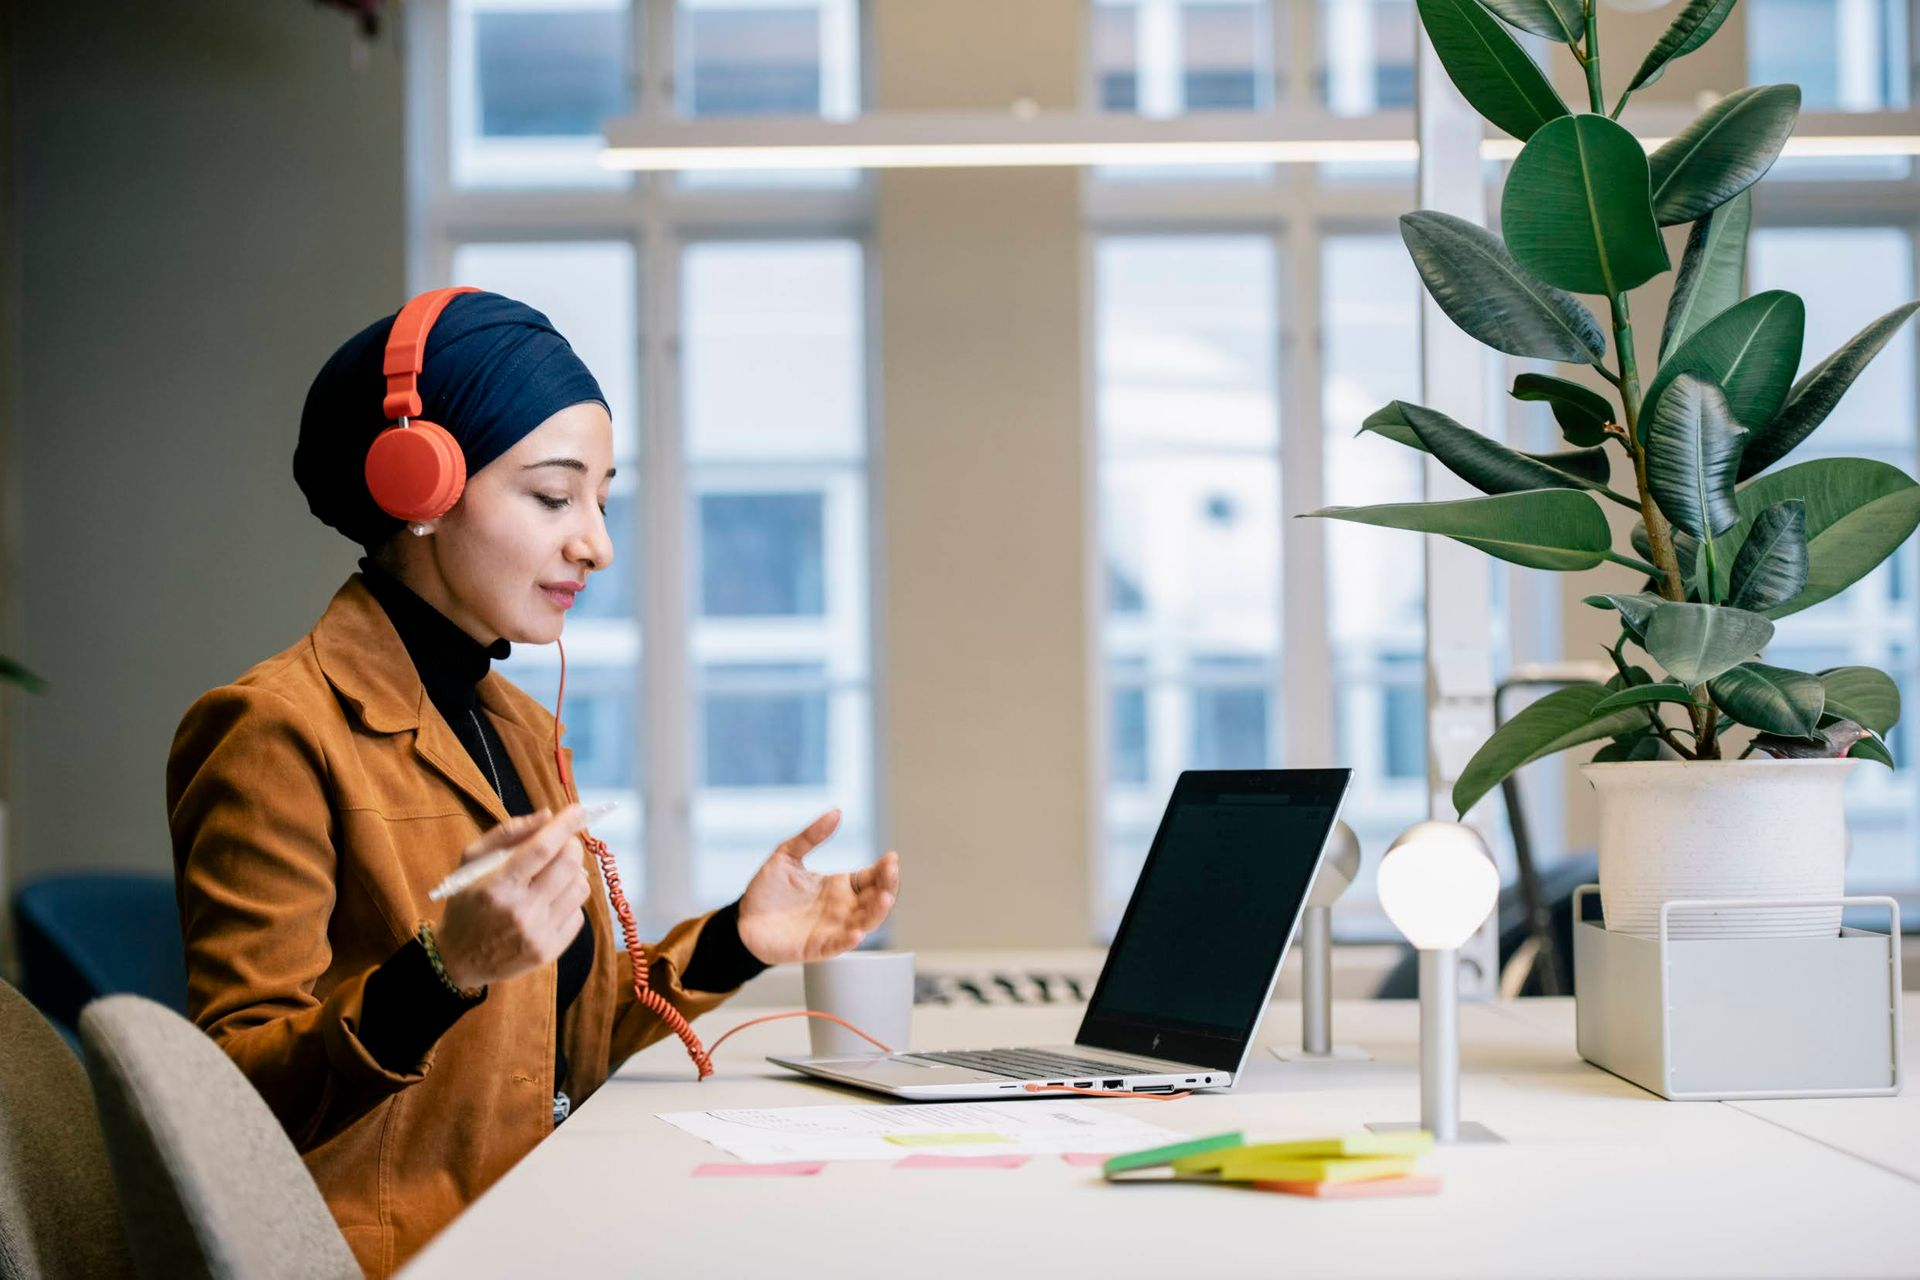 A young woman wearing headphones over a hijab, sitting a a desk and working in front of a laptop